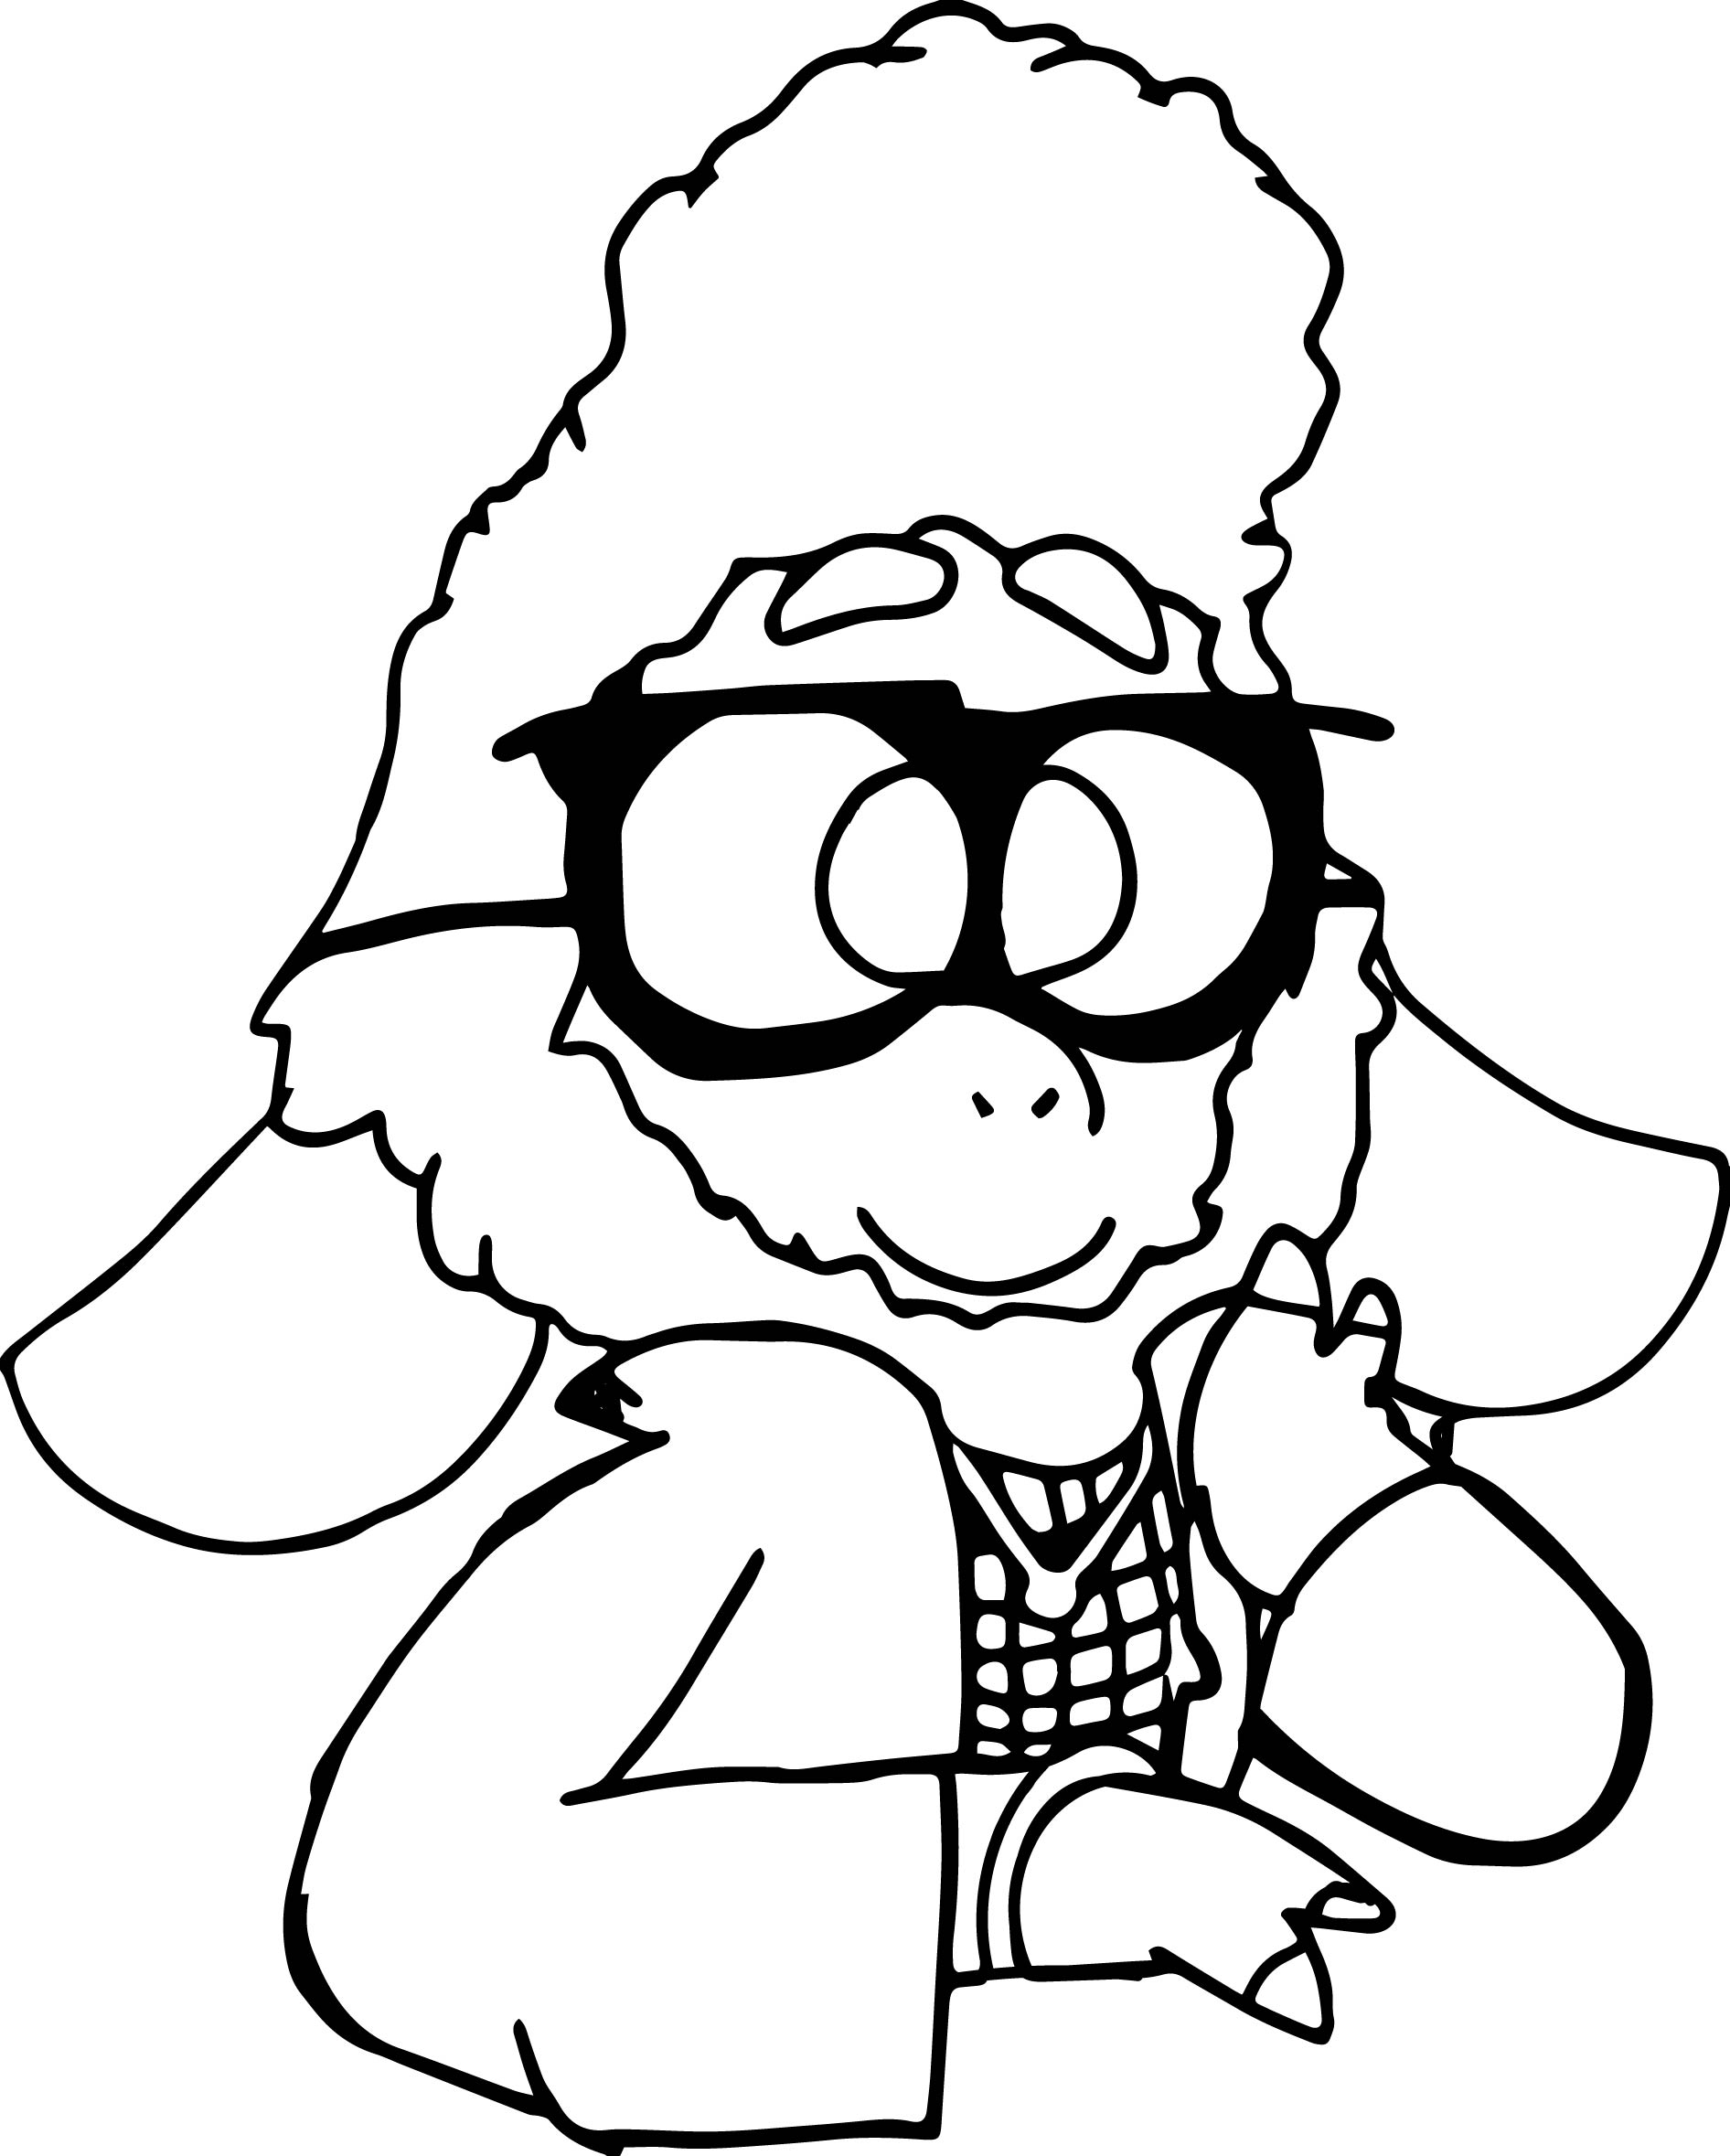 Zootopia Sheep Coloring Page